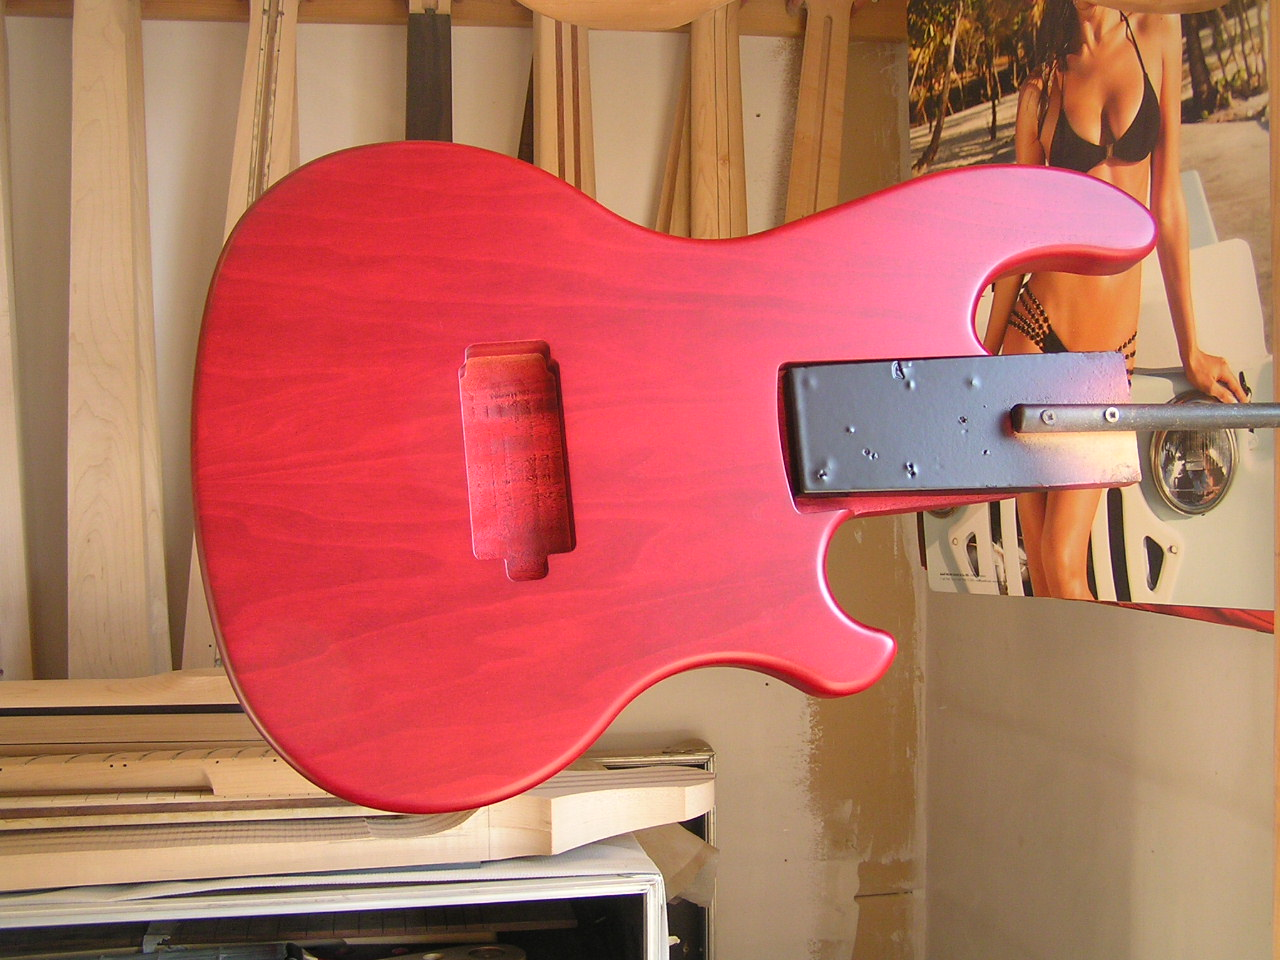 Matt. - See here a fine wine red matt finish.